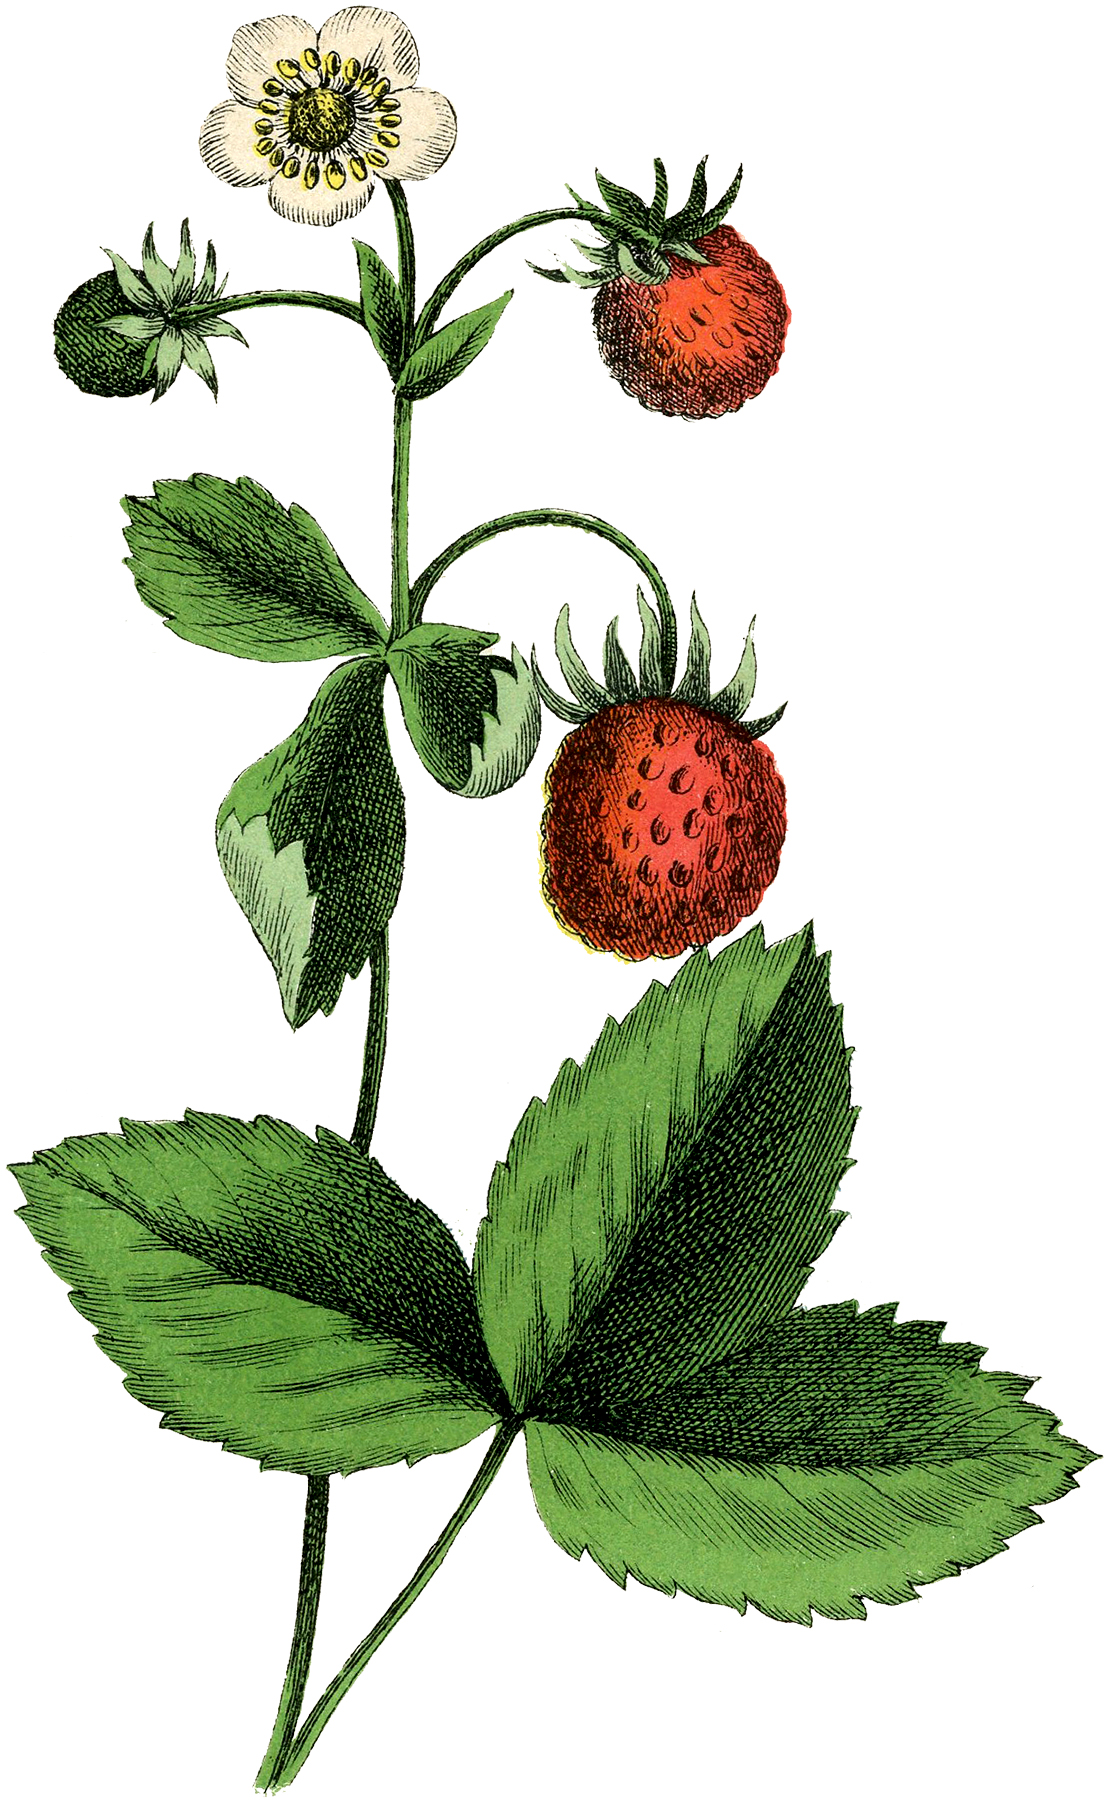 Strawberries clipart vintage strawberry. Beautiful plant image the